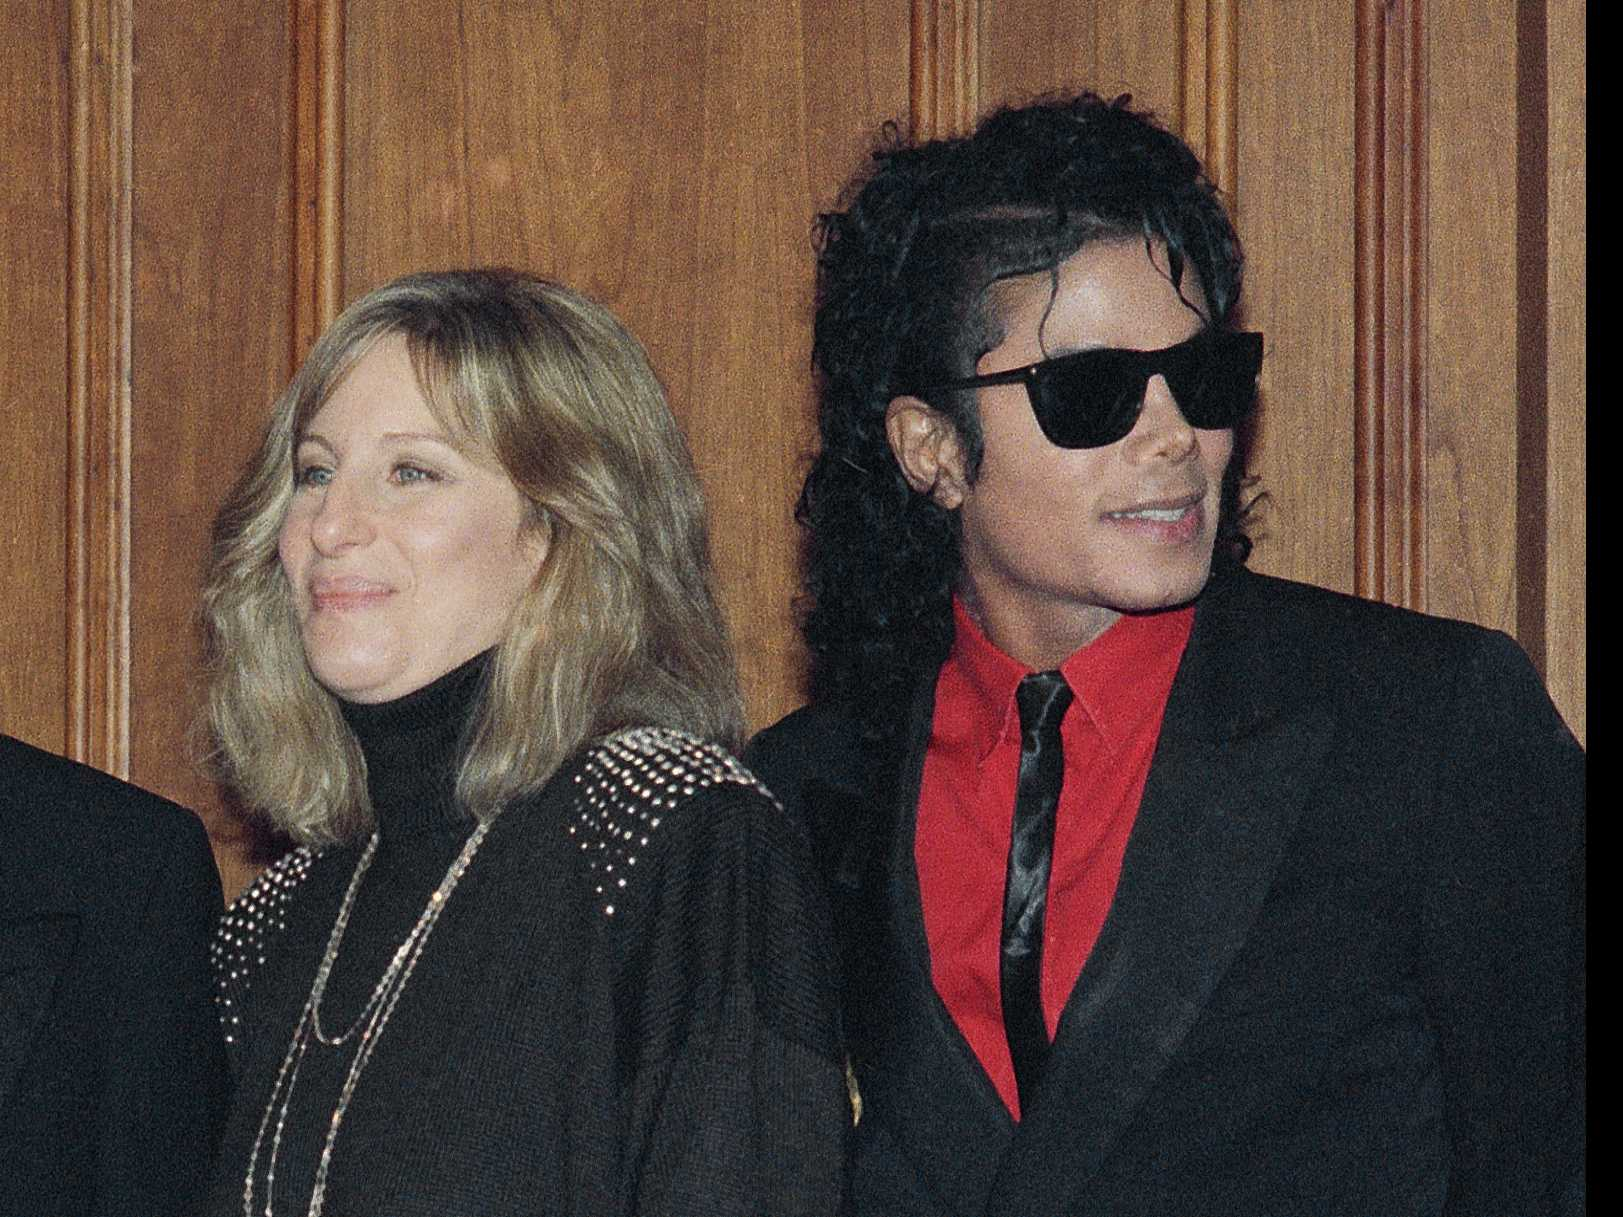 Streisand Apologizes for Remarks on Michael Jackson Accusers